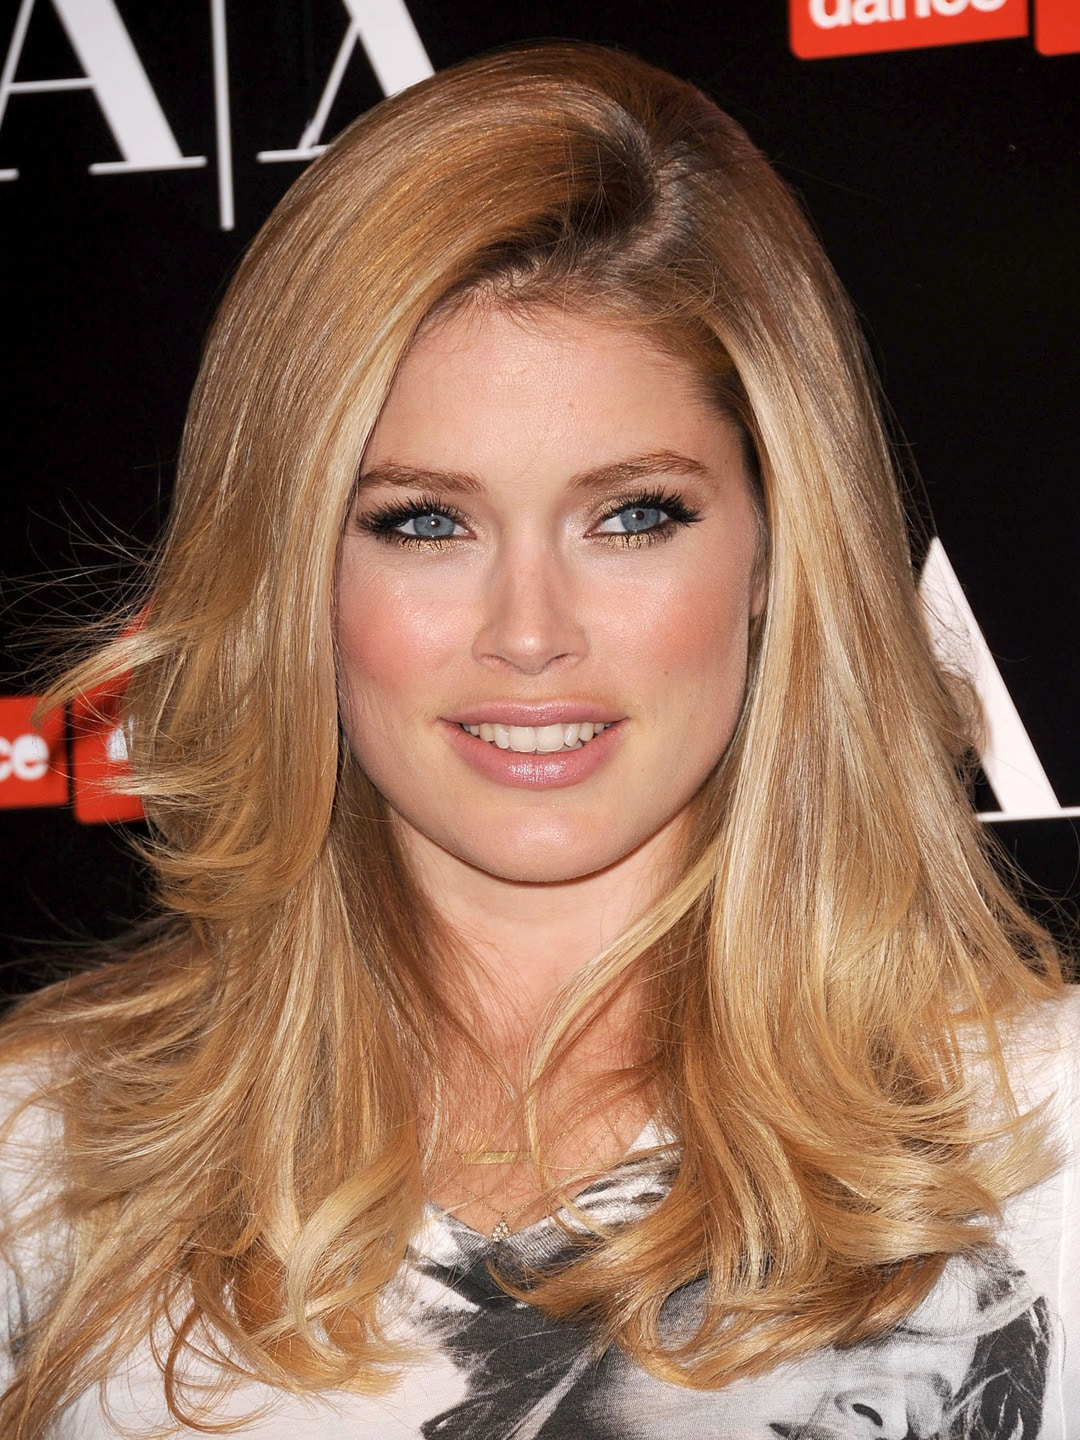 Doutzen Kroes Dutch Actress, Philanthropist